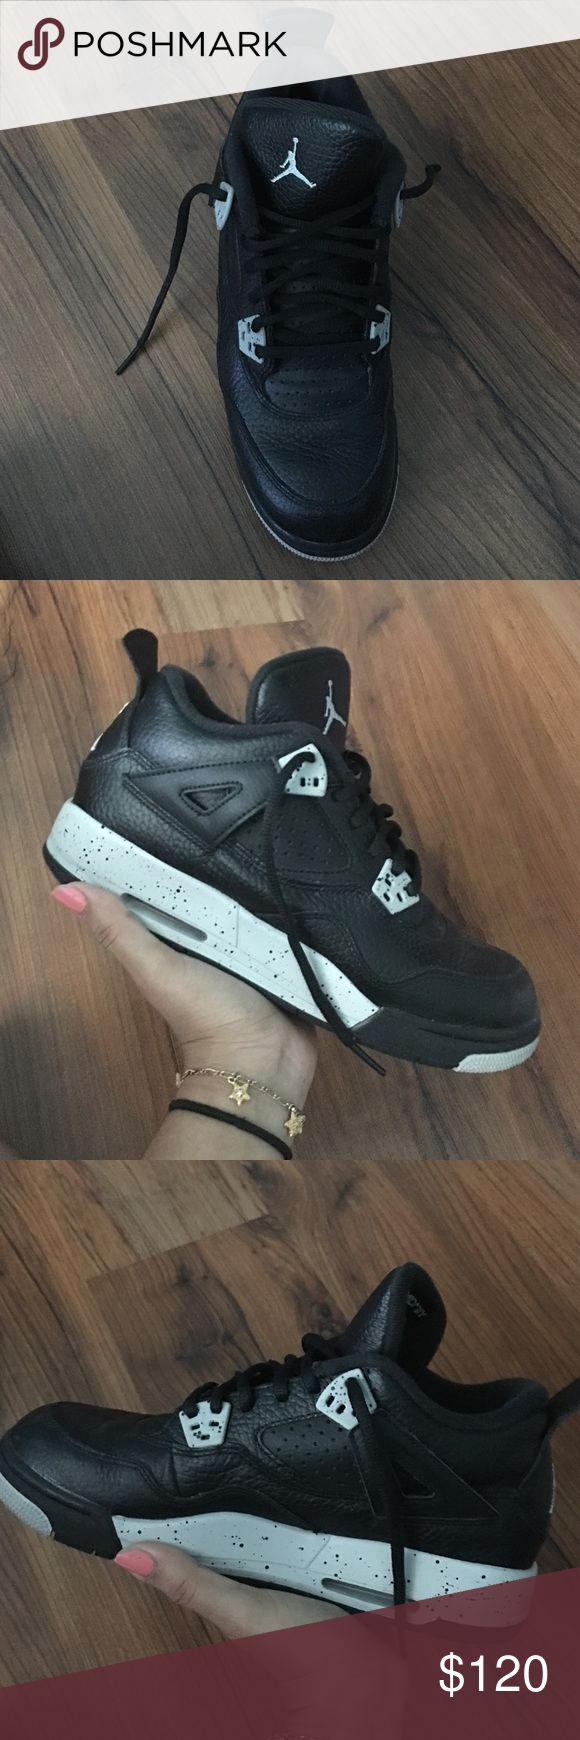 Jordan Oreo 4's Brand New!! Only wore them a few times. (don't have the box though..) Jordan Shoes Sneakers